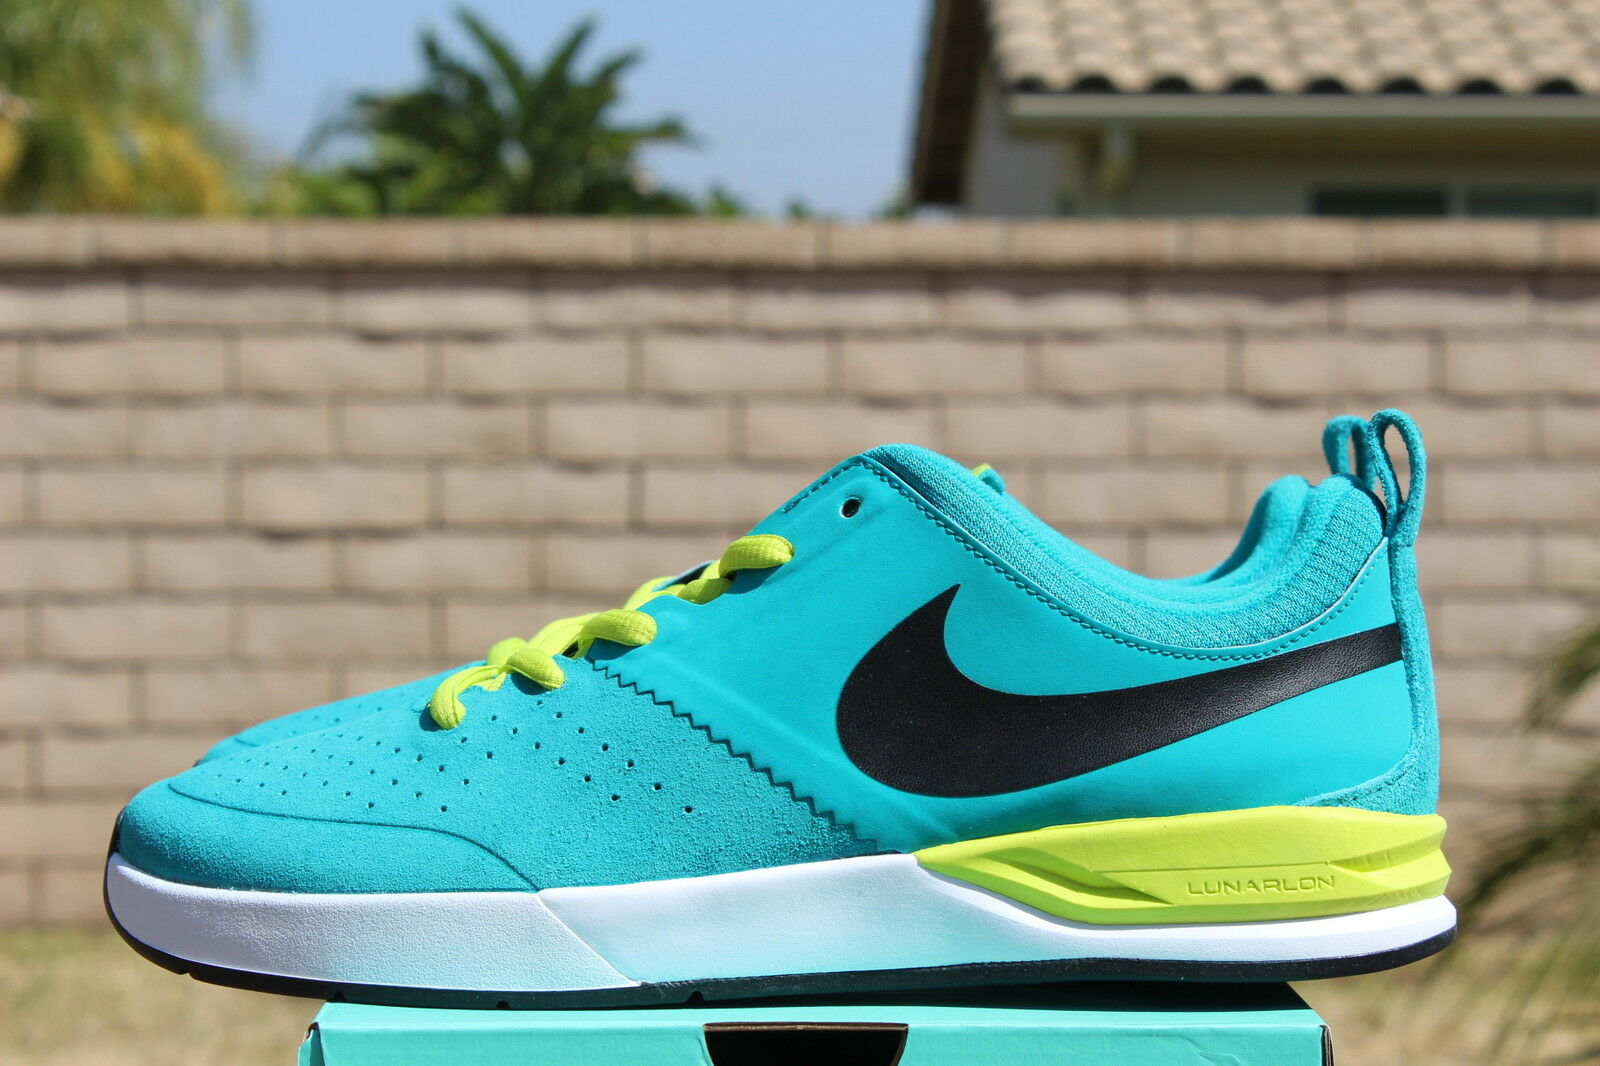 NIKE PROJECT BA SB 8 BRIAN ANDERSON TURBO GREEN WHITE RUST FACTOR 599698 316